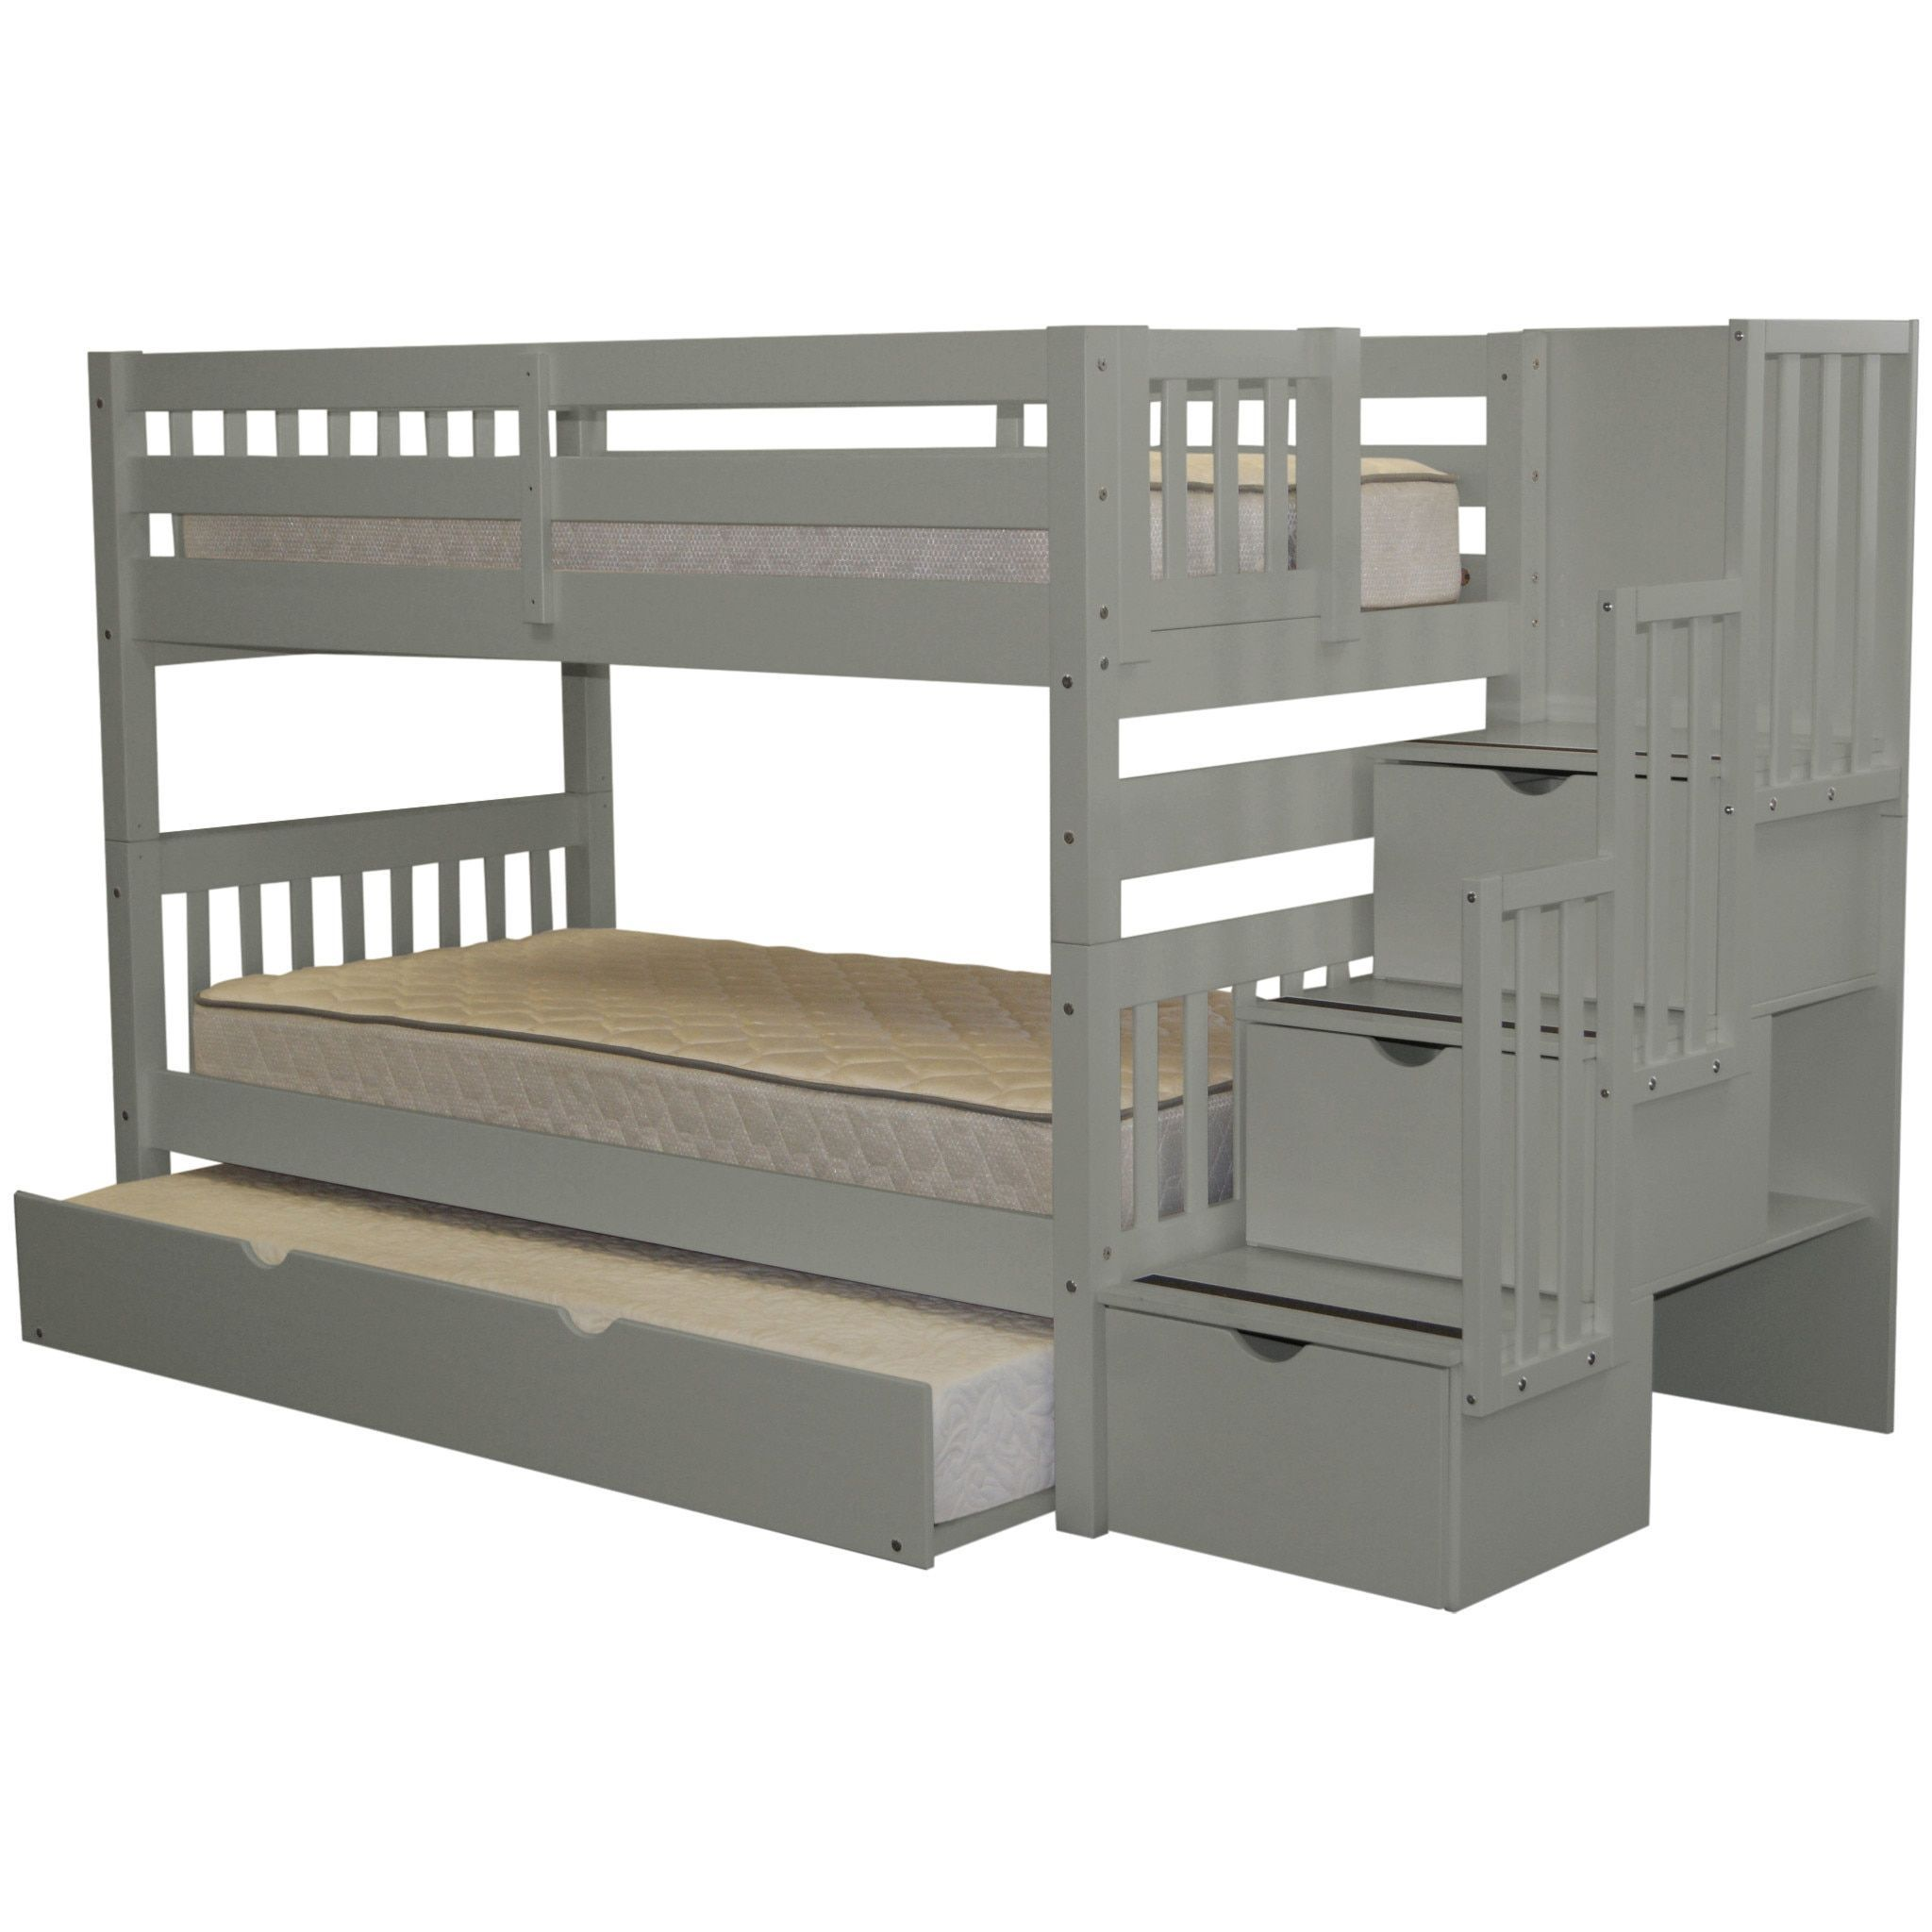 Bedz king stairway grey wood twin bunk bed with 3 drawer step ladder and trundle bed twin over - Bunk bed with drawer steps ...